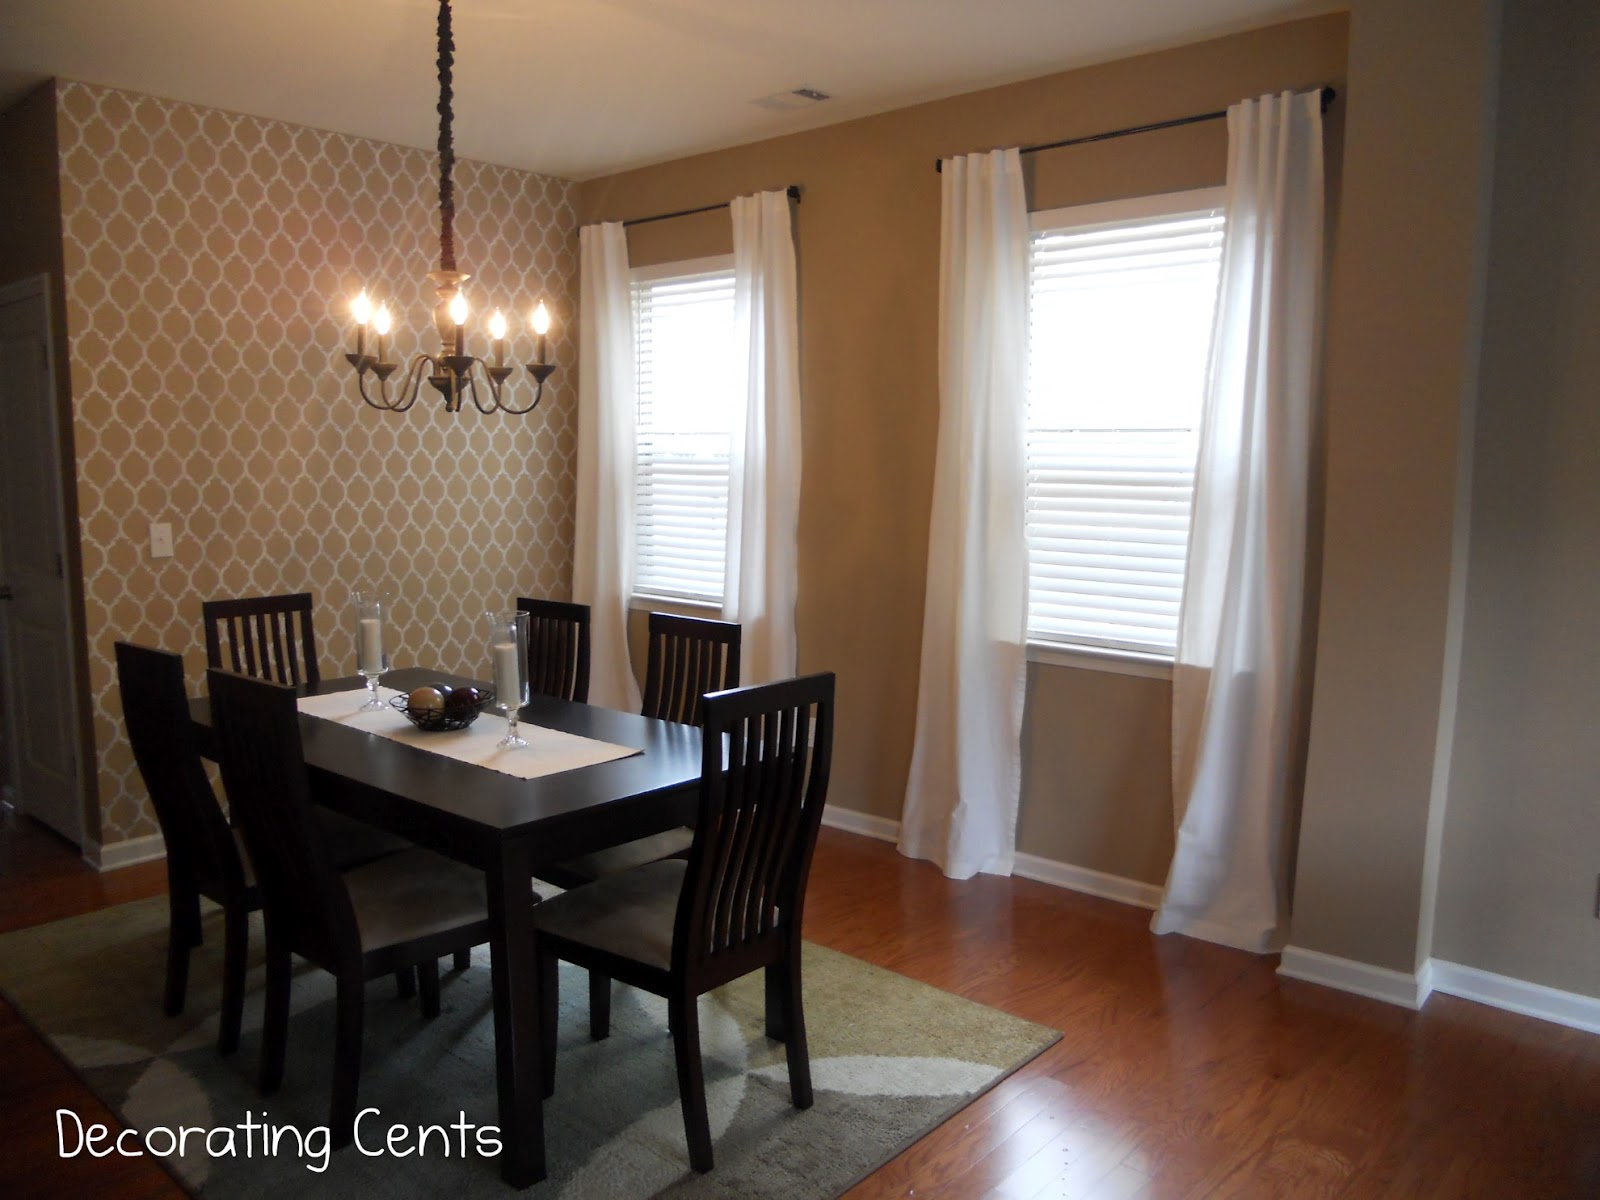 Decorating cents dining room curtains for Dining room valances